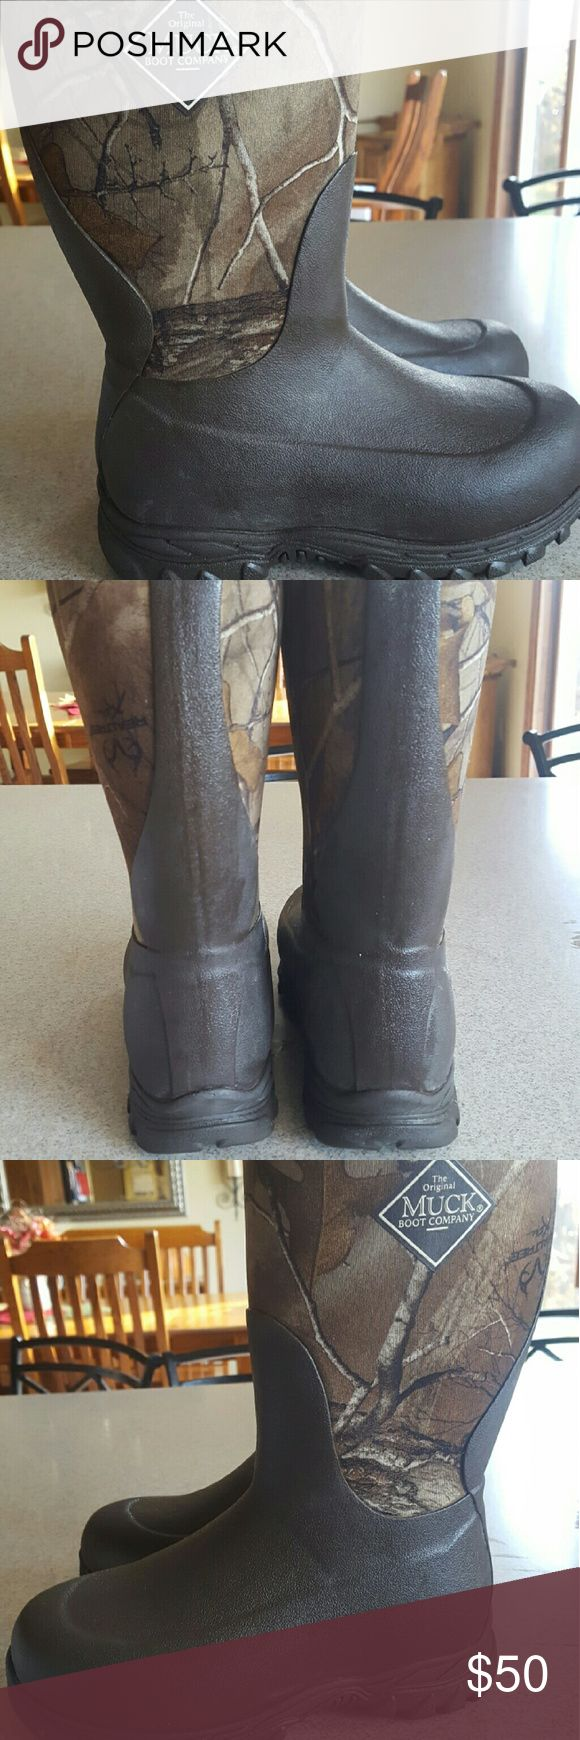 Kids Insulated Muck Boots Brown camo color. Really good condition. Only wore half a season. Kids size 2 Muck Shoes Rain & Snow Boots